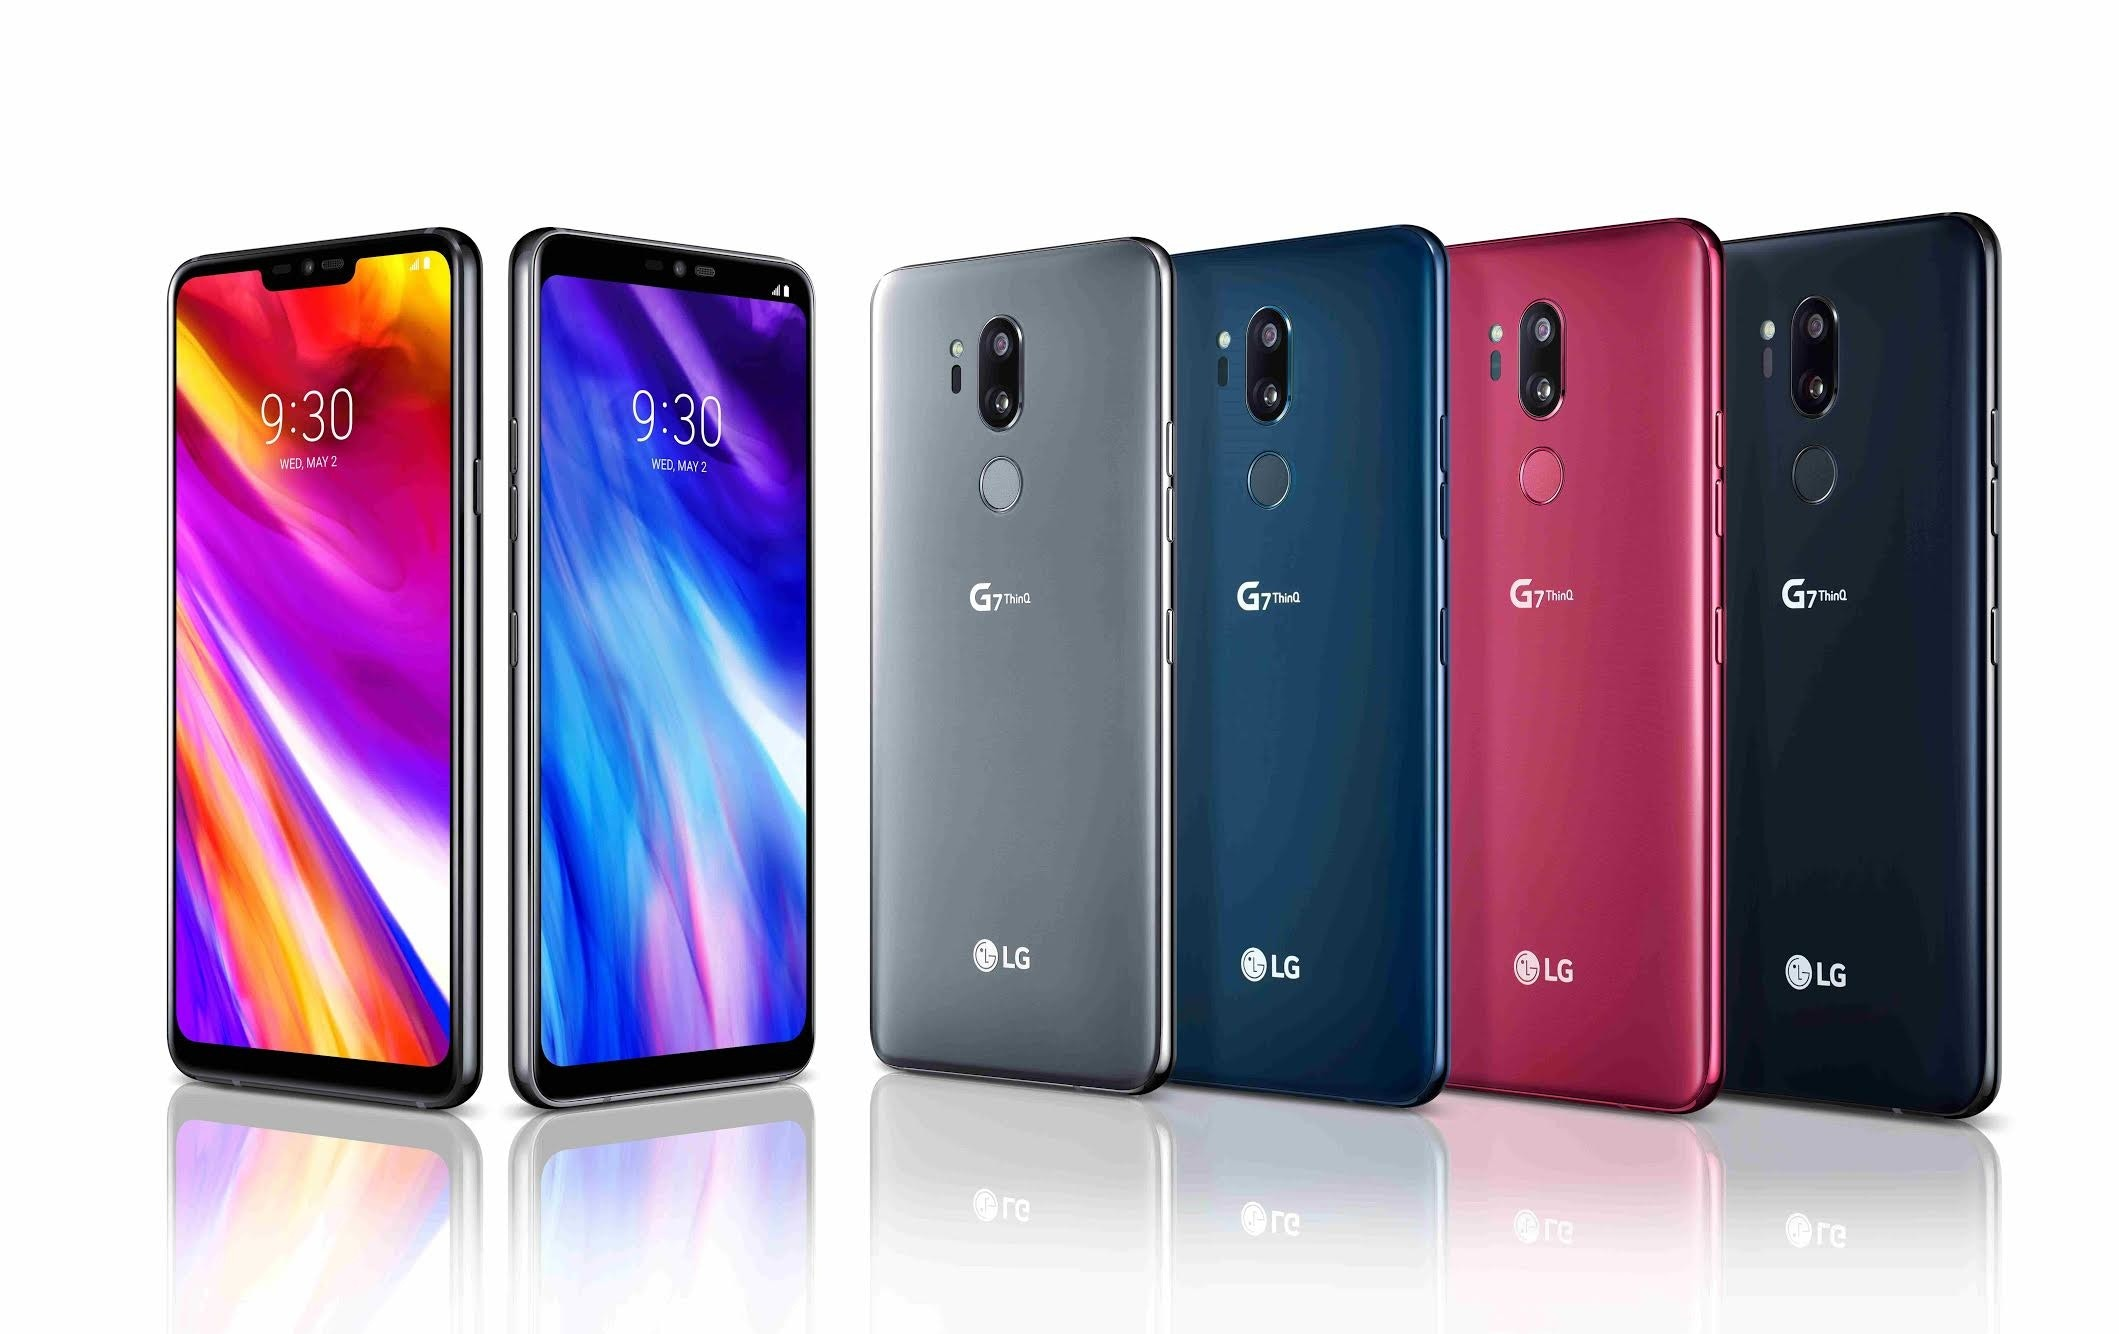 Feature phone, Smartphone, Mobile Phone Accessories, Product design, Product, Cellular network, Design, Mobile Phones, iPhone, feature phone, mobile phone, gadget, communication device, feature phone, product, electronic device, purple, portable communications device, product, telephony